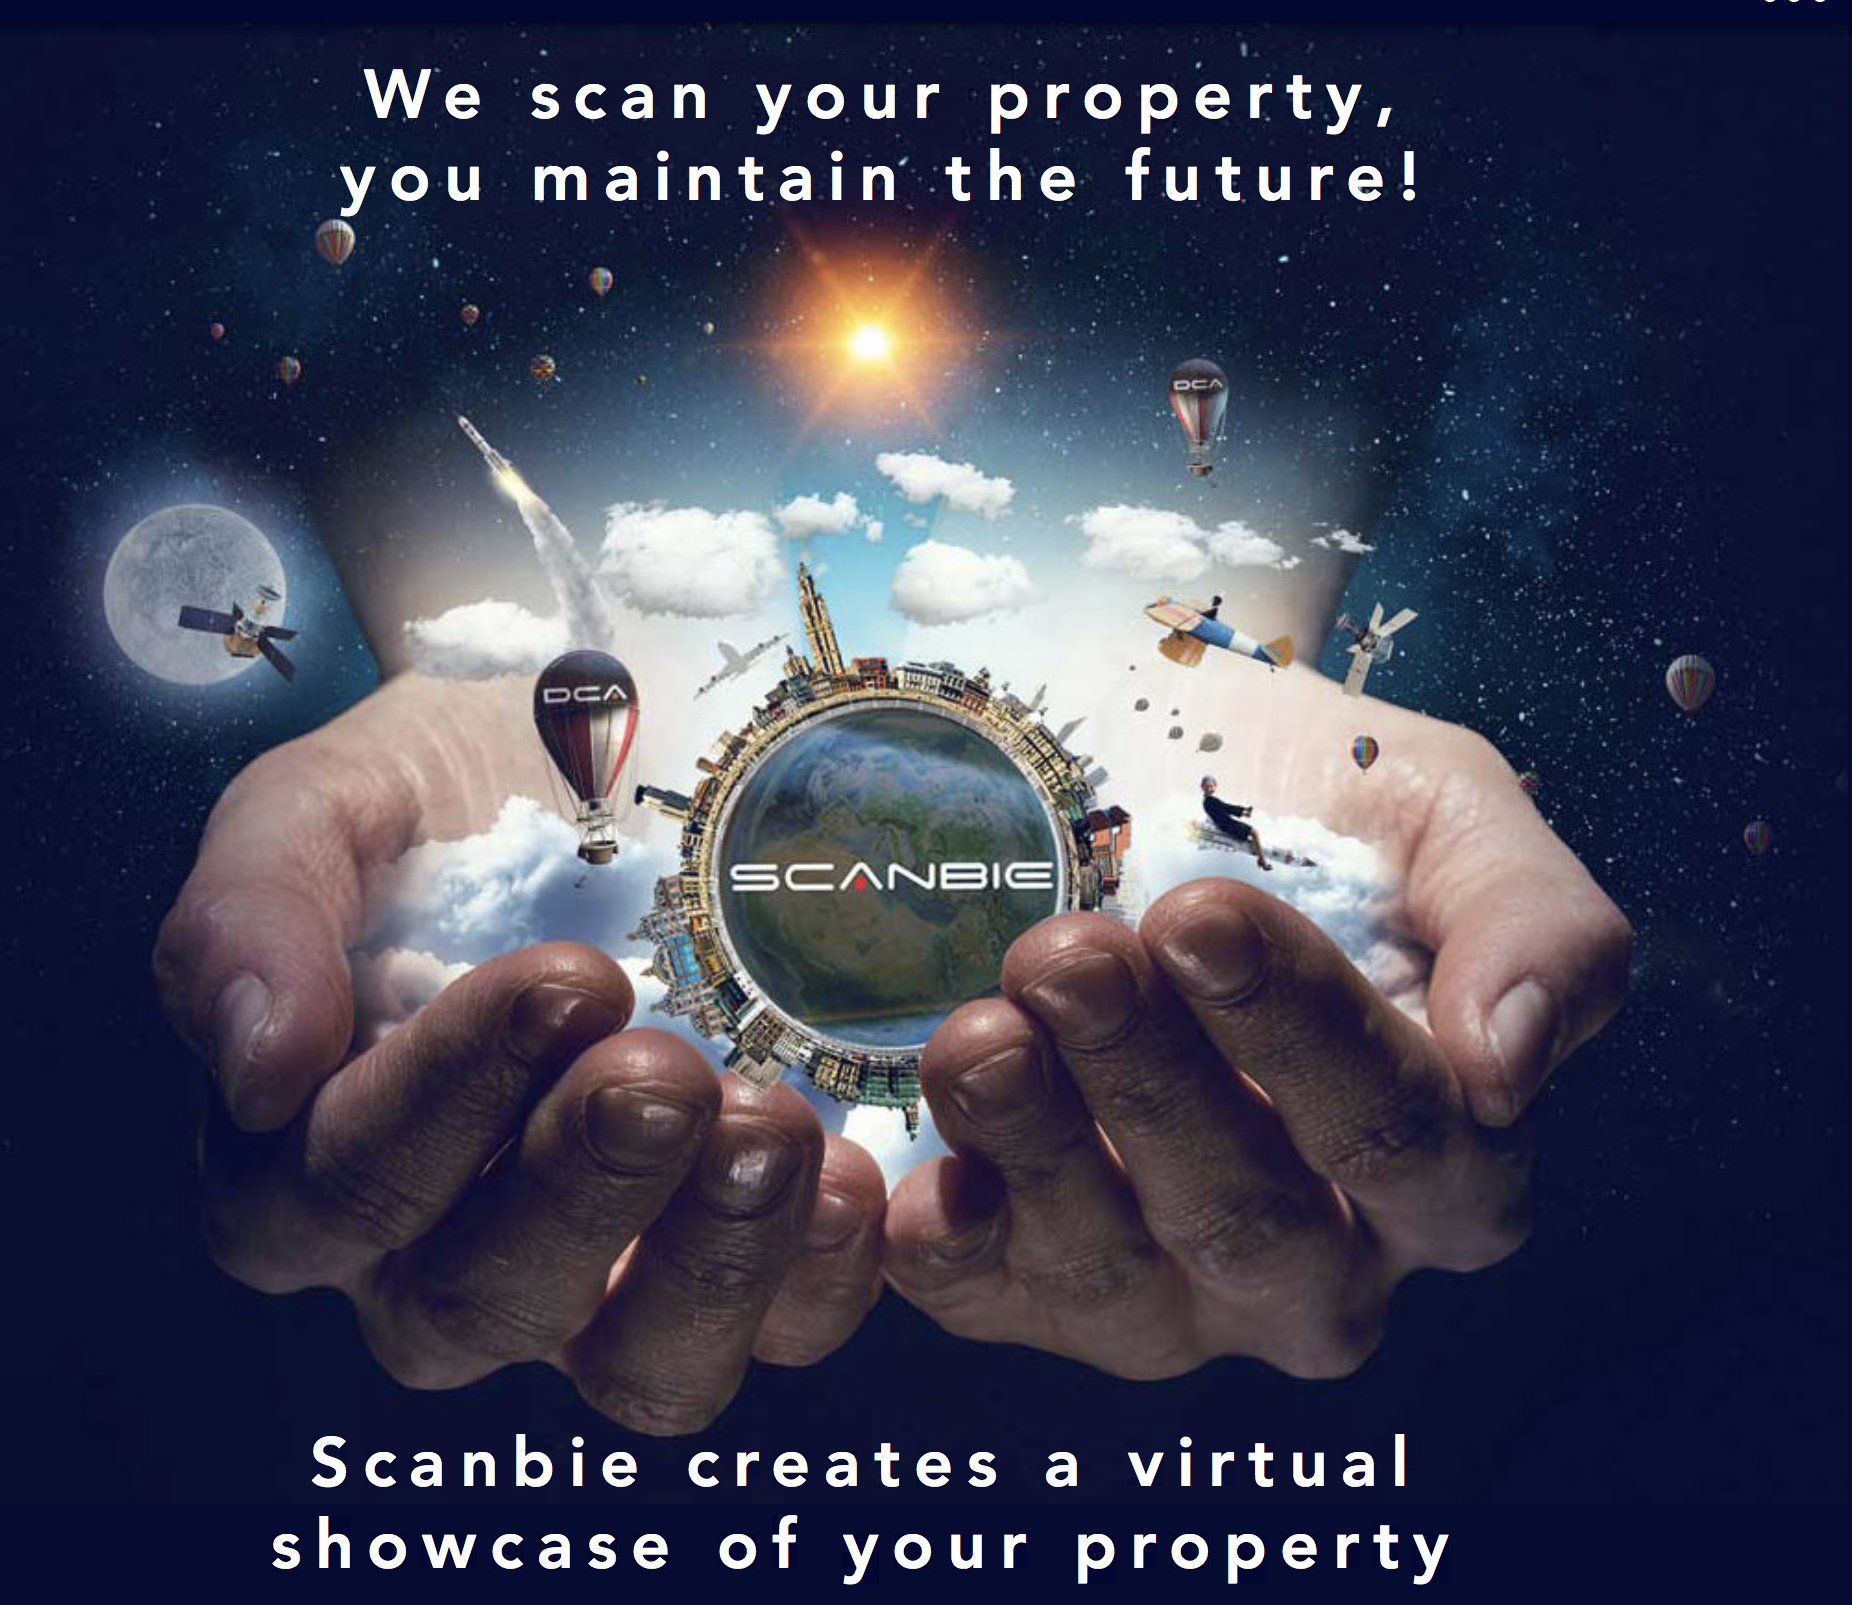 Scanbie.com, 3D scanning at its best